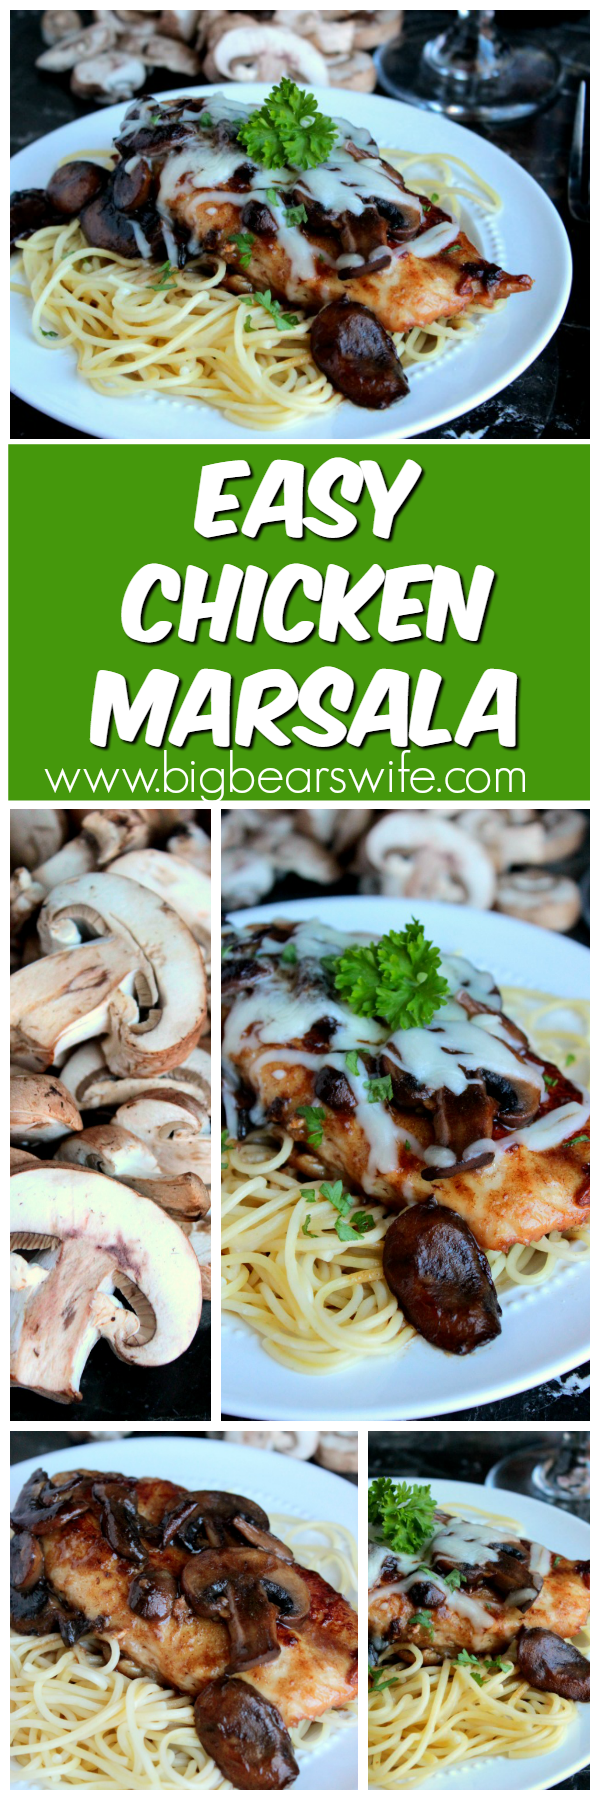 Easy Chicken Marsala Collage